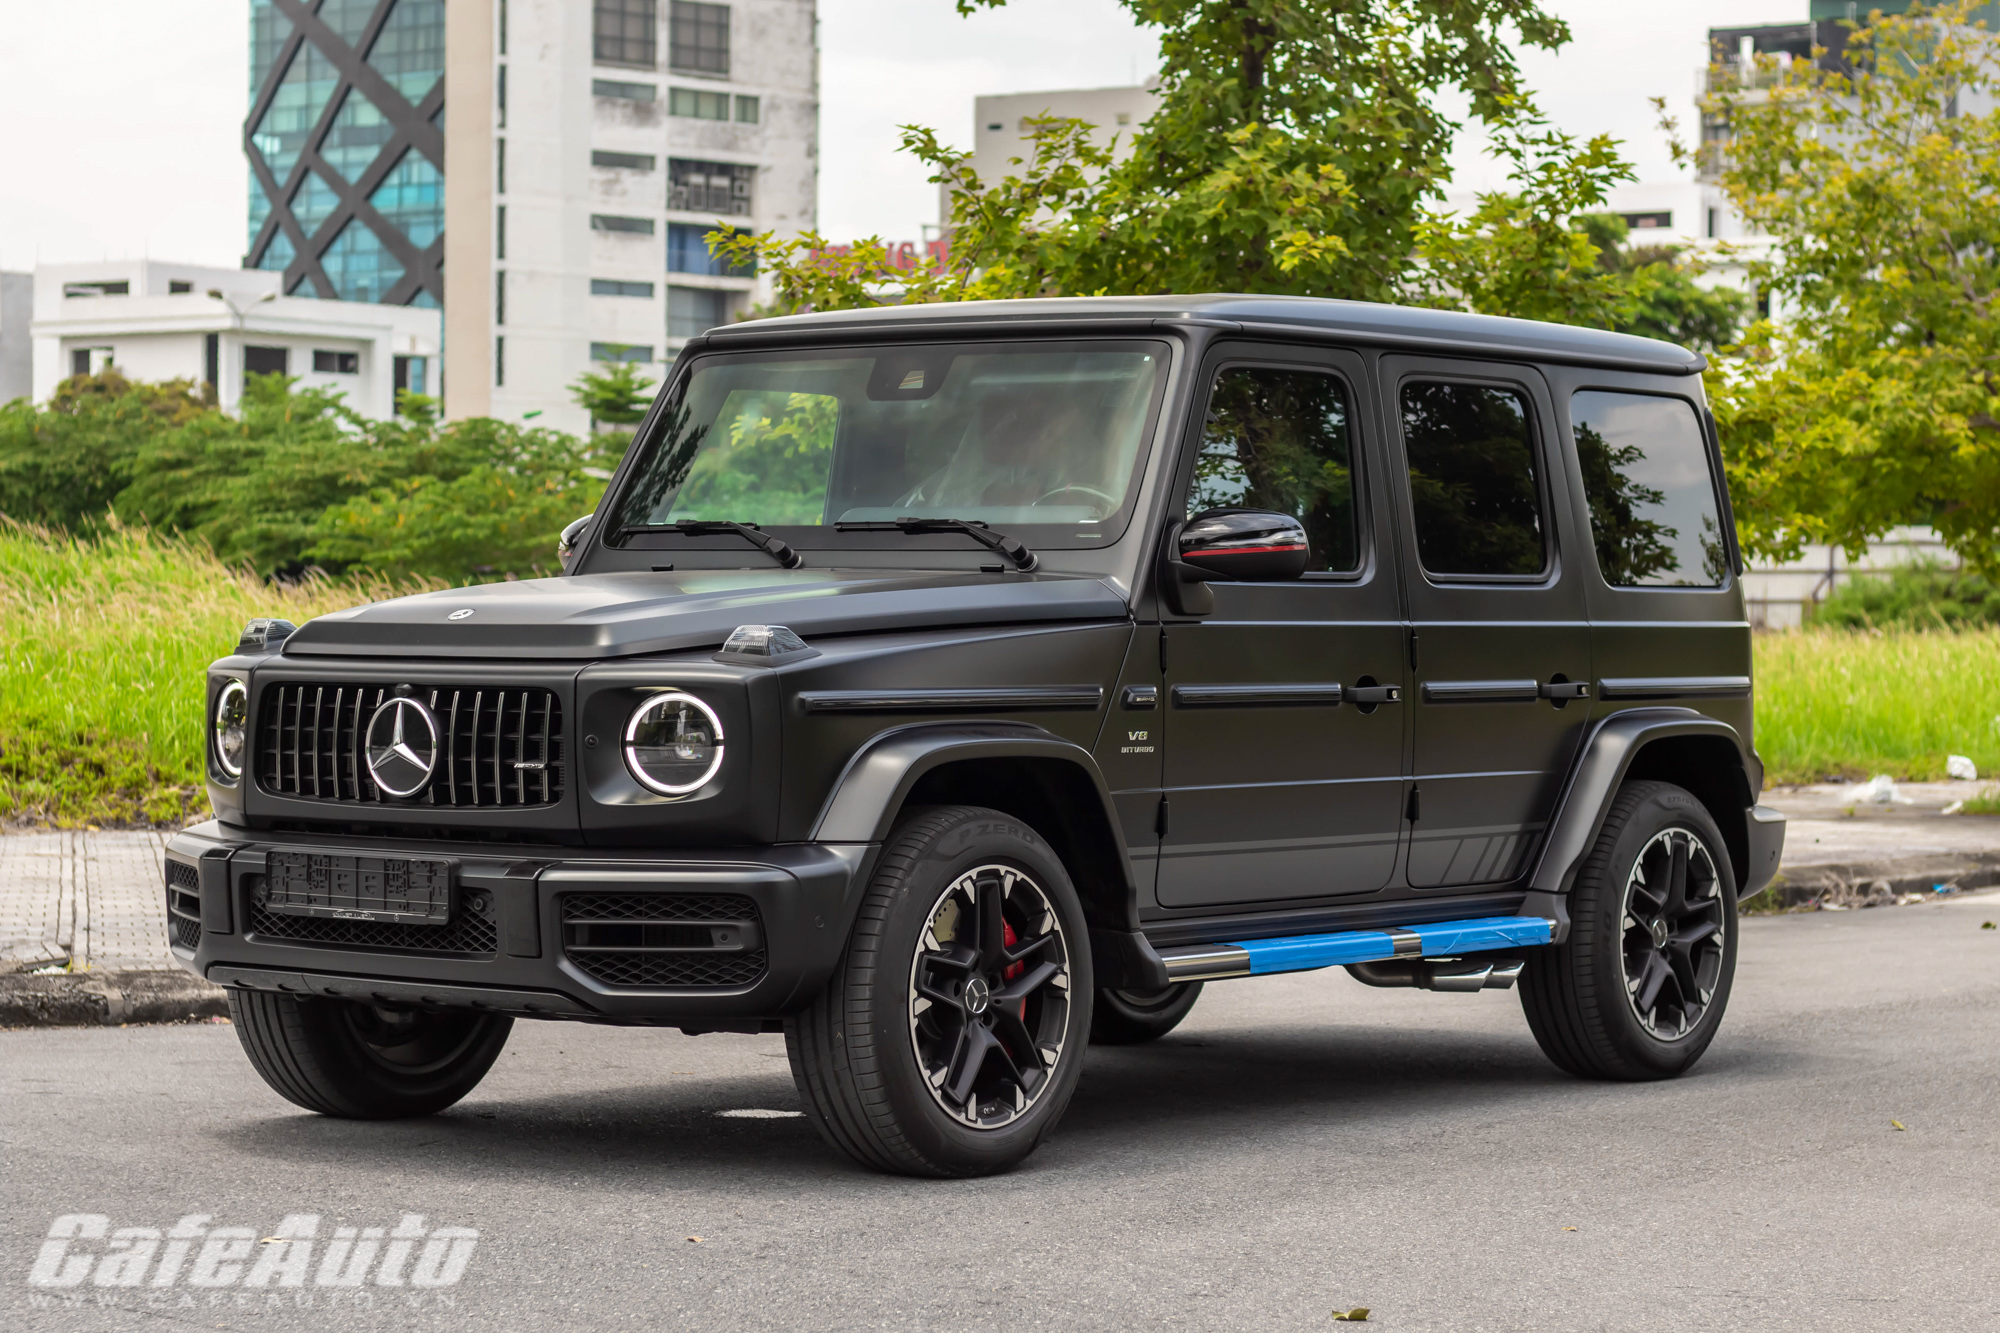 MercedesG63TrailPackage-cafeautovn-3